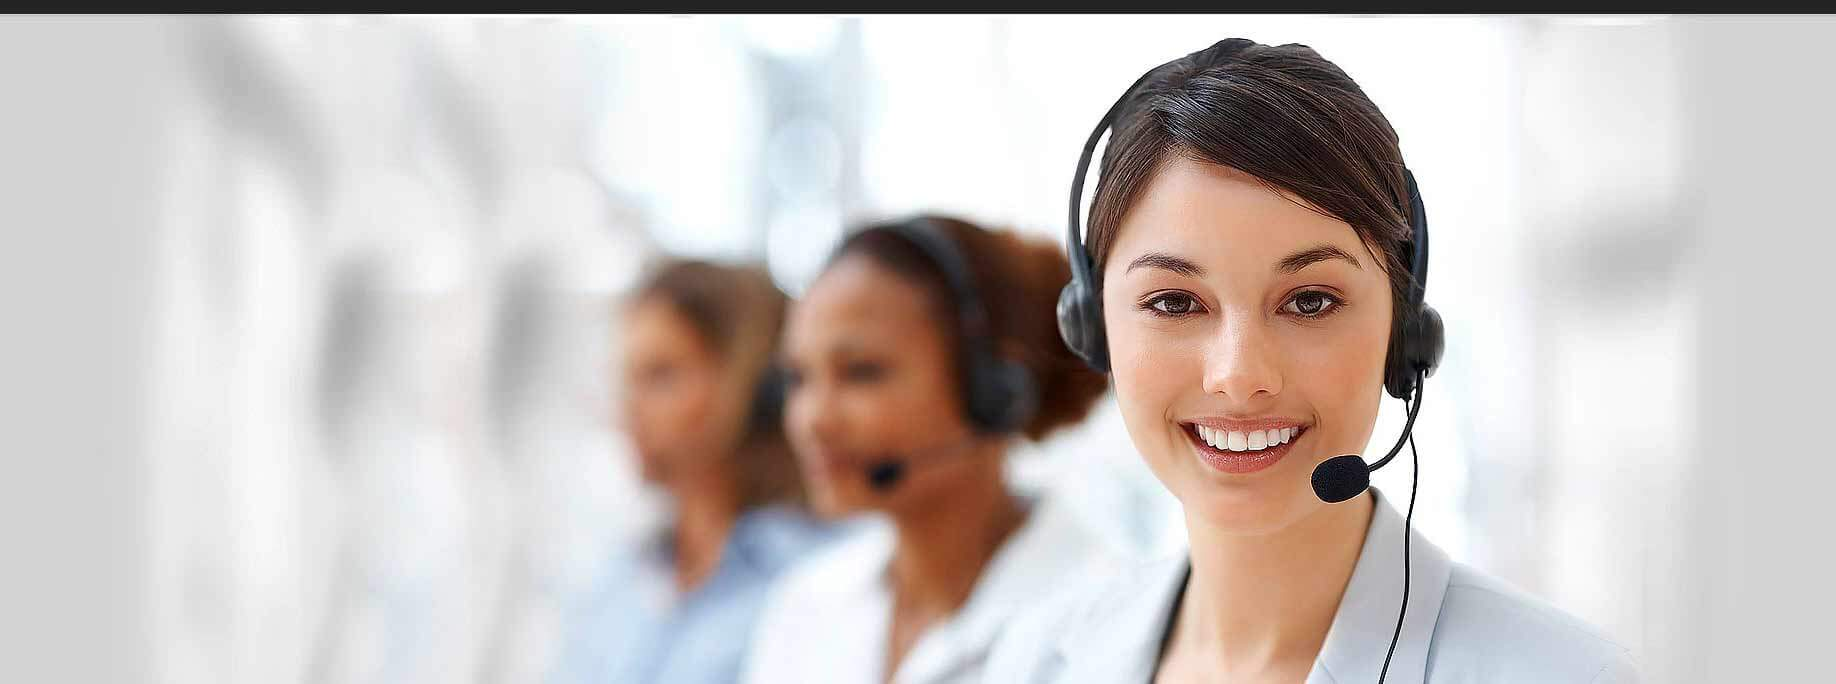 Worldwide Call Centers - Your Call Center Outsourcing Experts | Call Center | Call Center Outsourcing | Call Centers | Call Center Agencies